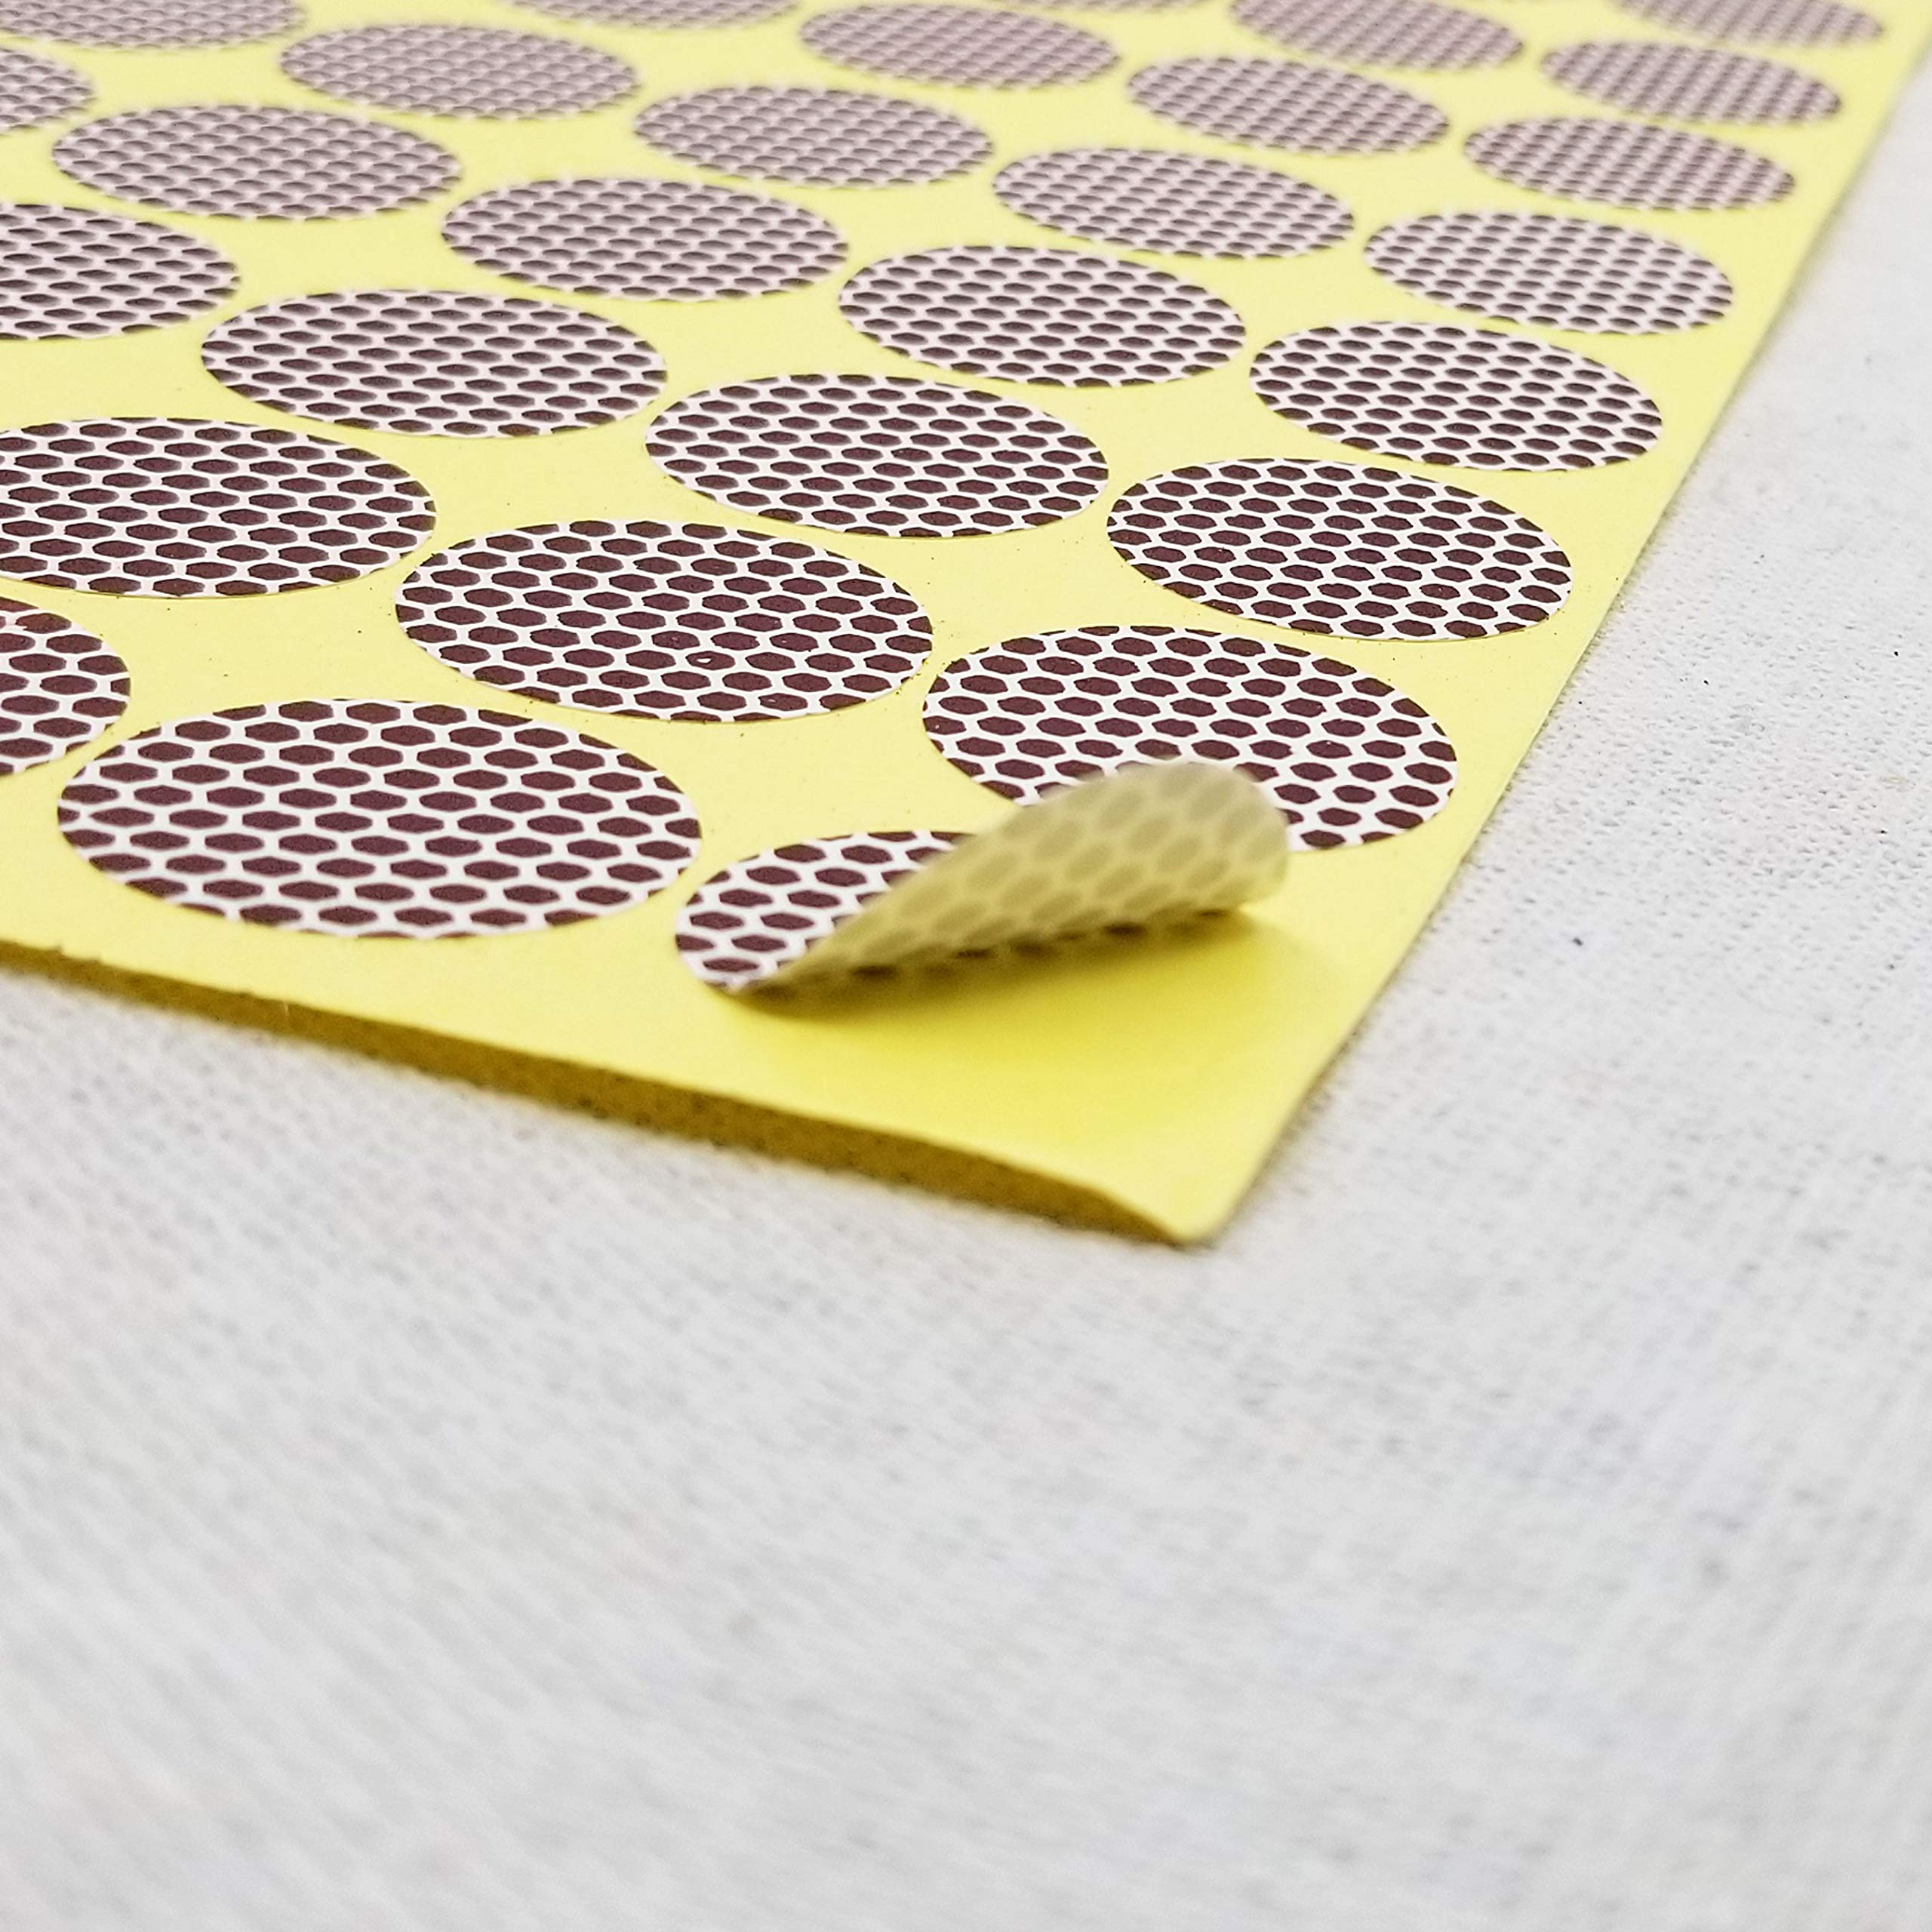 Circle Match Strikers 1.00'' - Honeycomb Pattern - 100 Pieces by Strike a Match (Image #2)